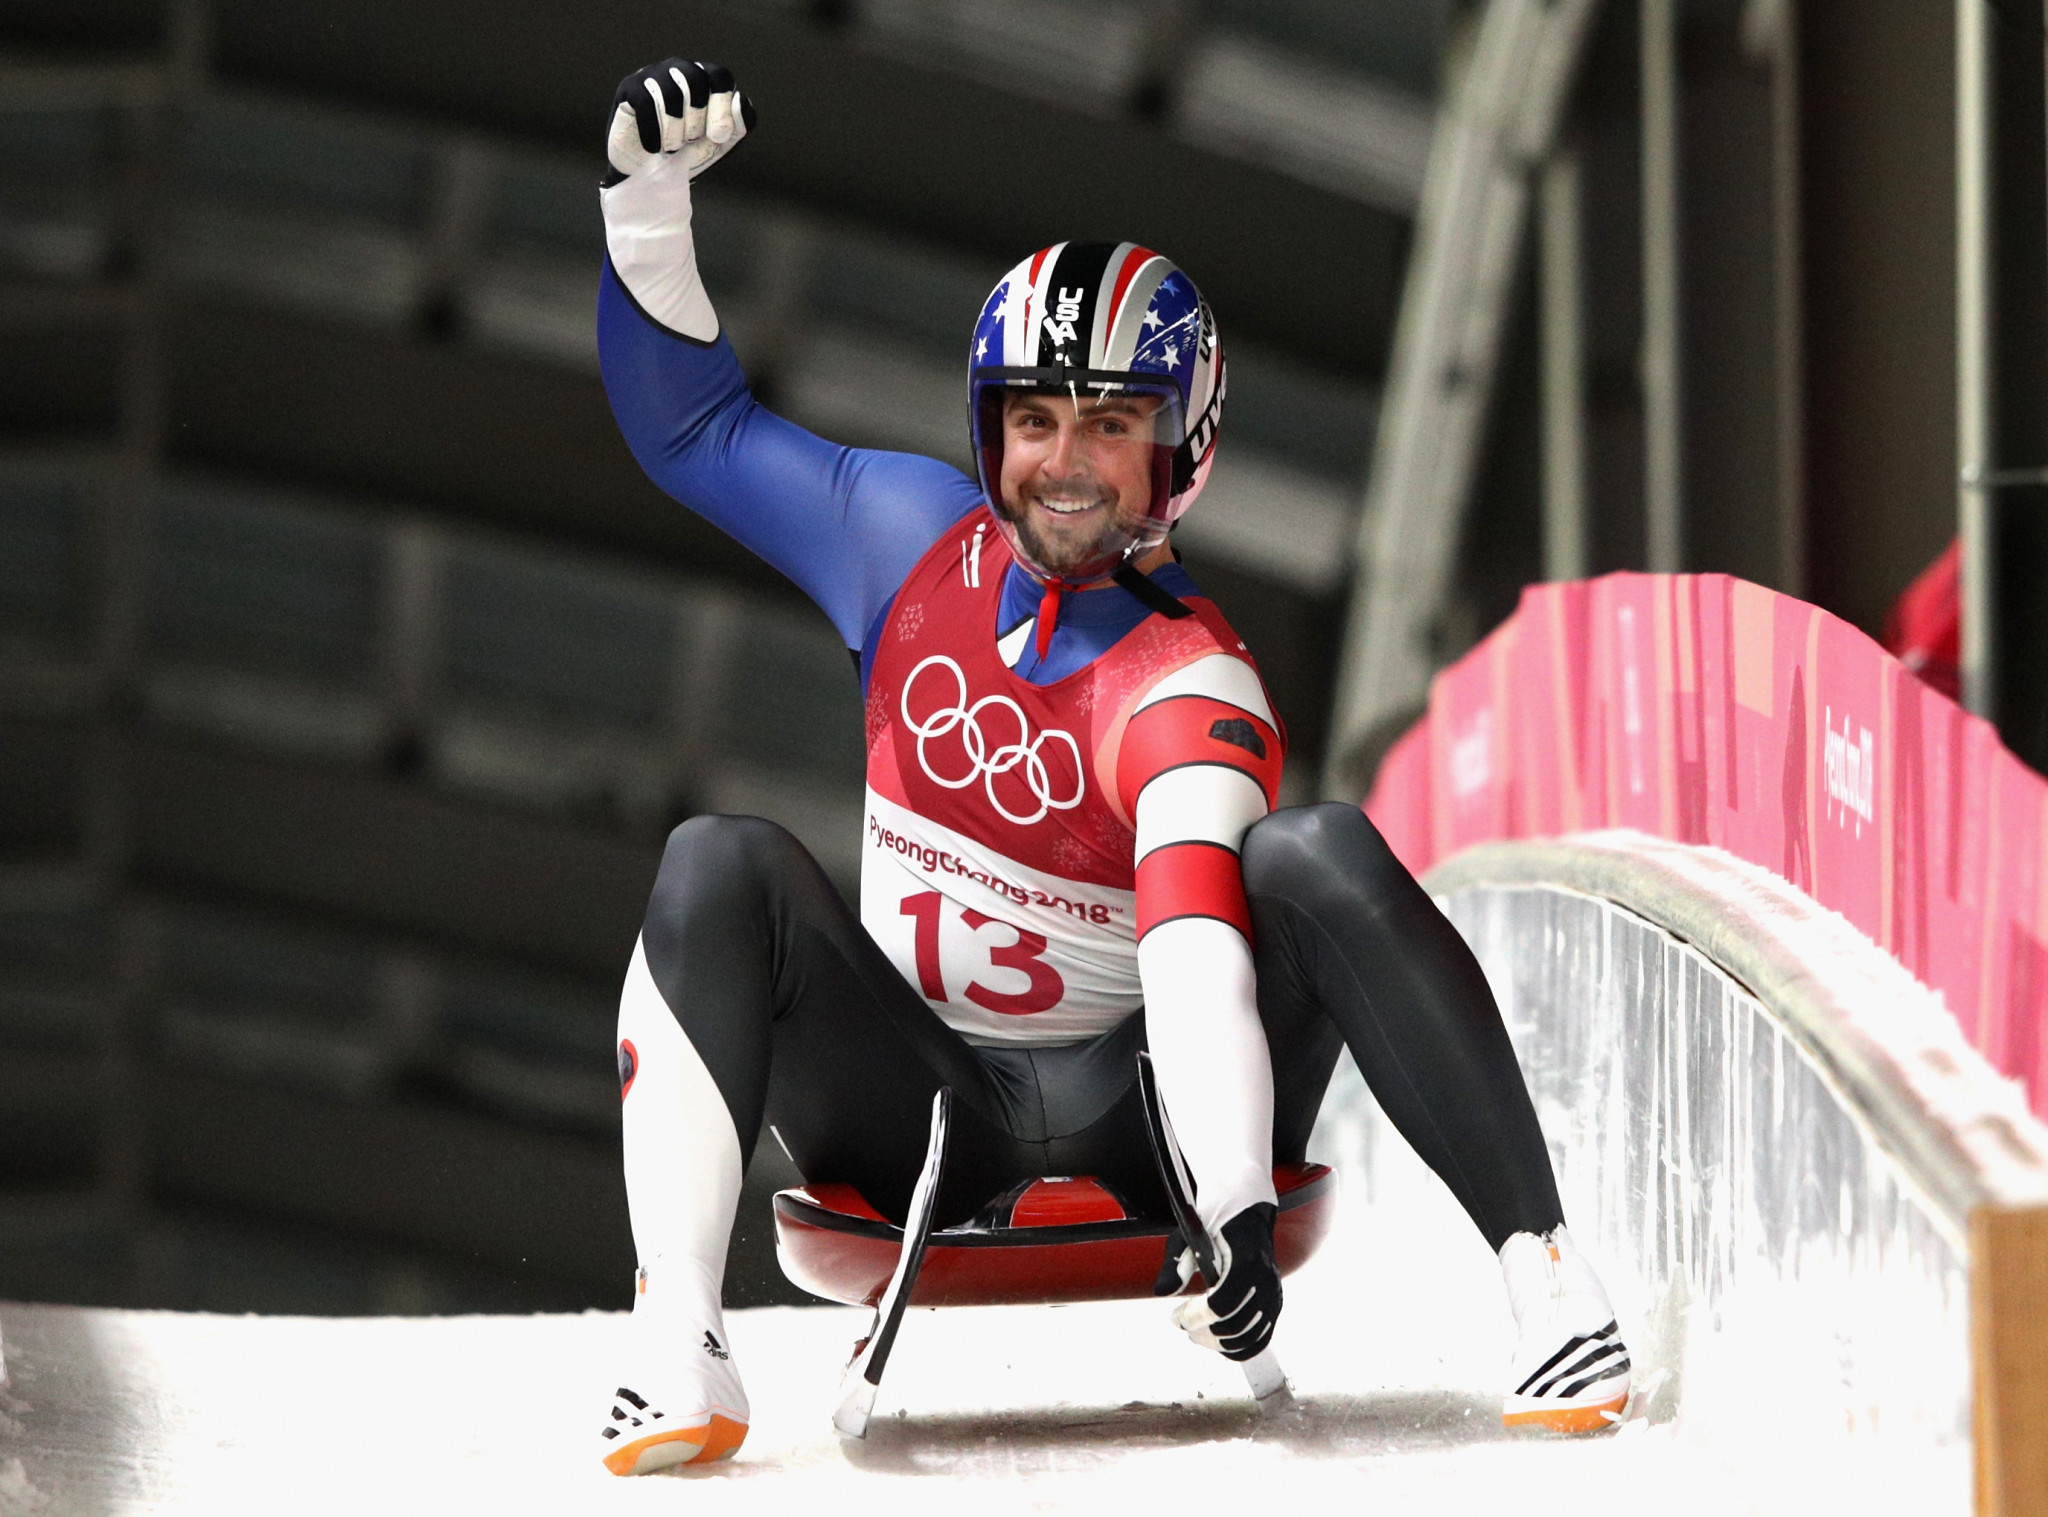 USA Luge to skip first four World Cups of new season over COVID fears